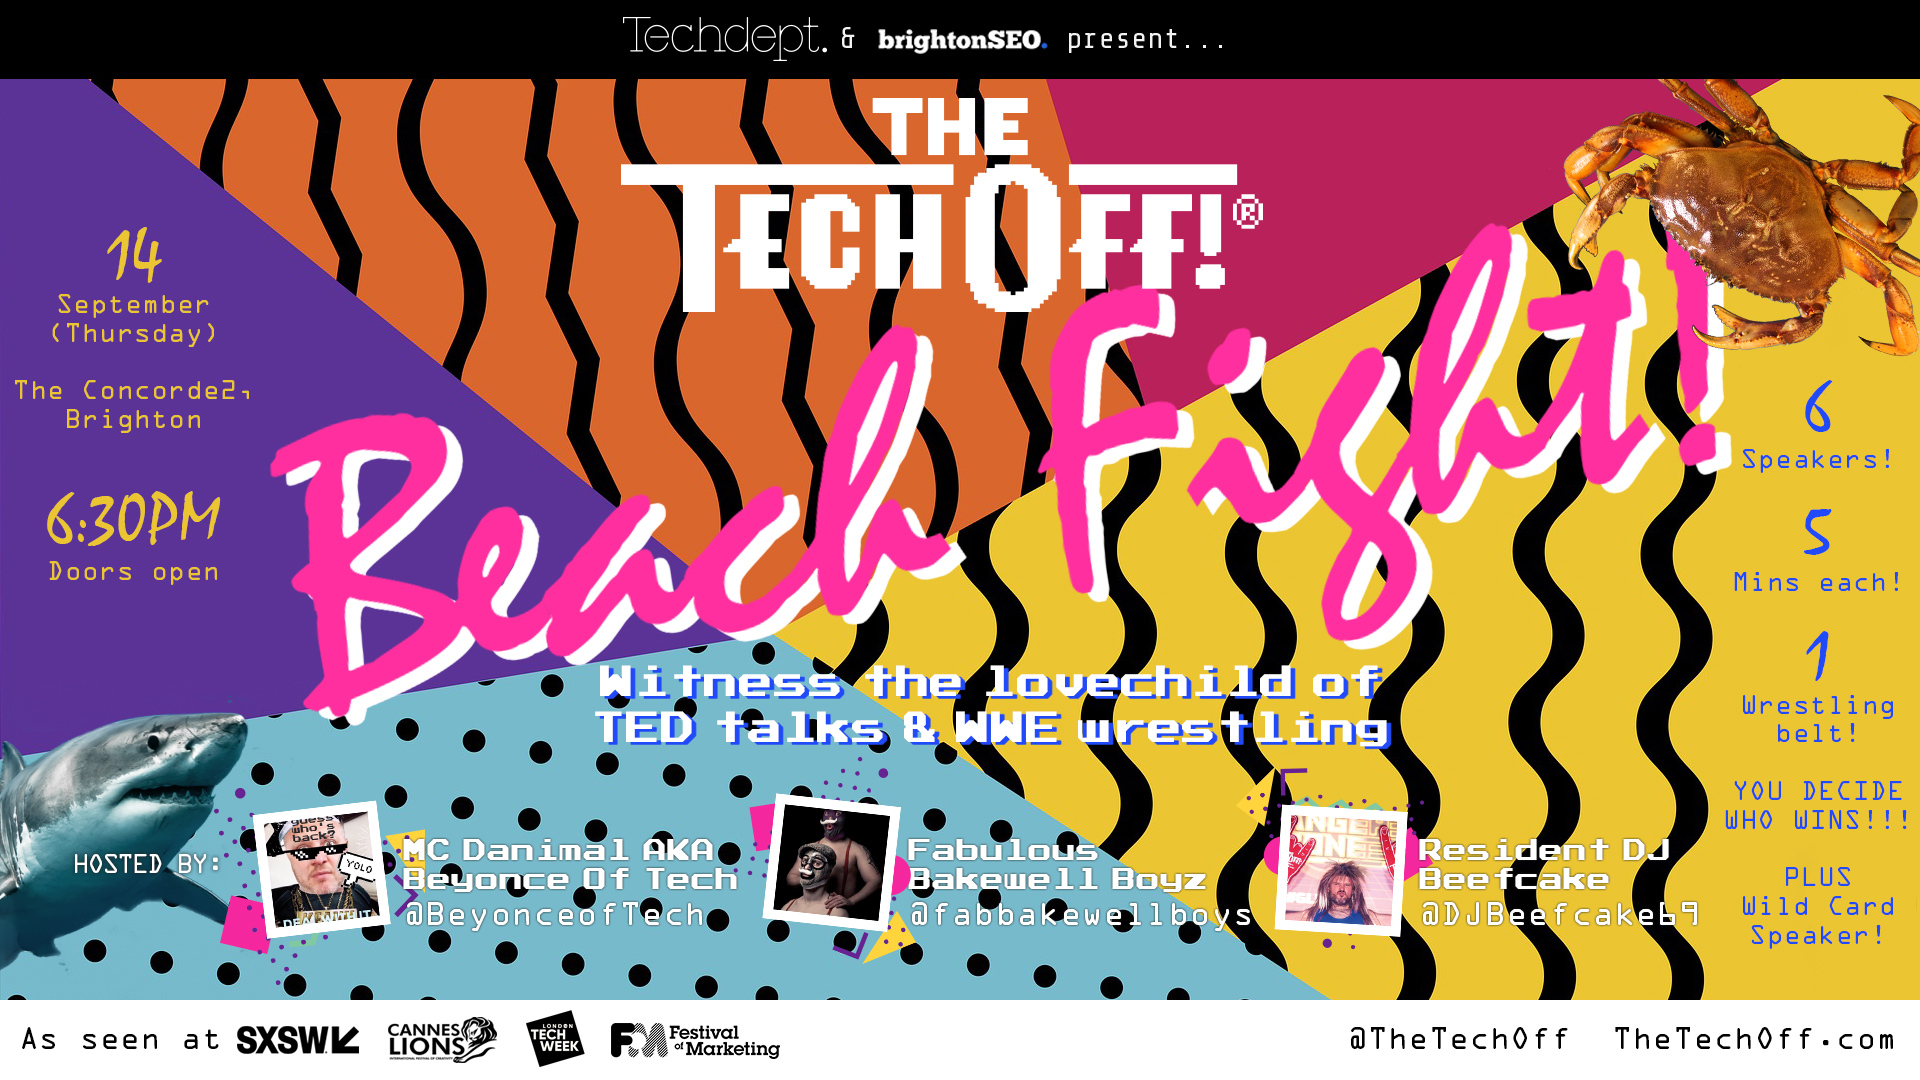 The Tech Off! back in a September Showdown